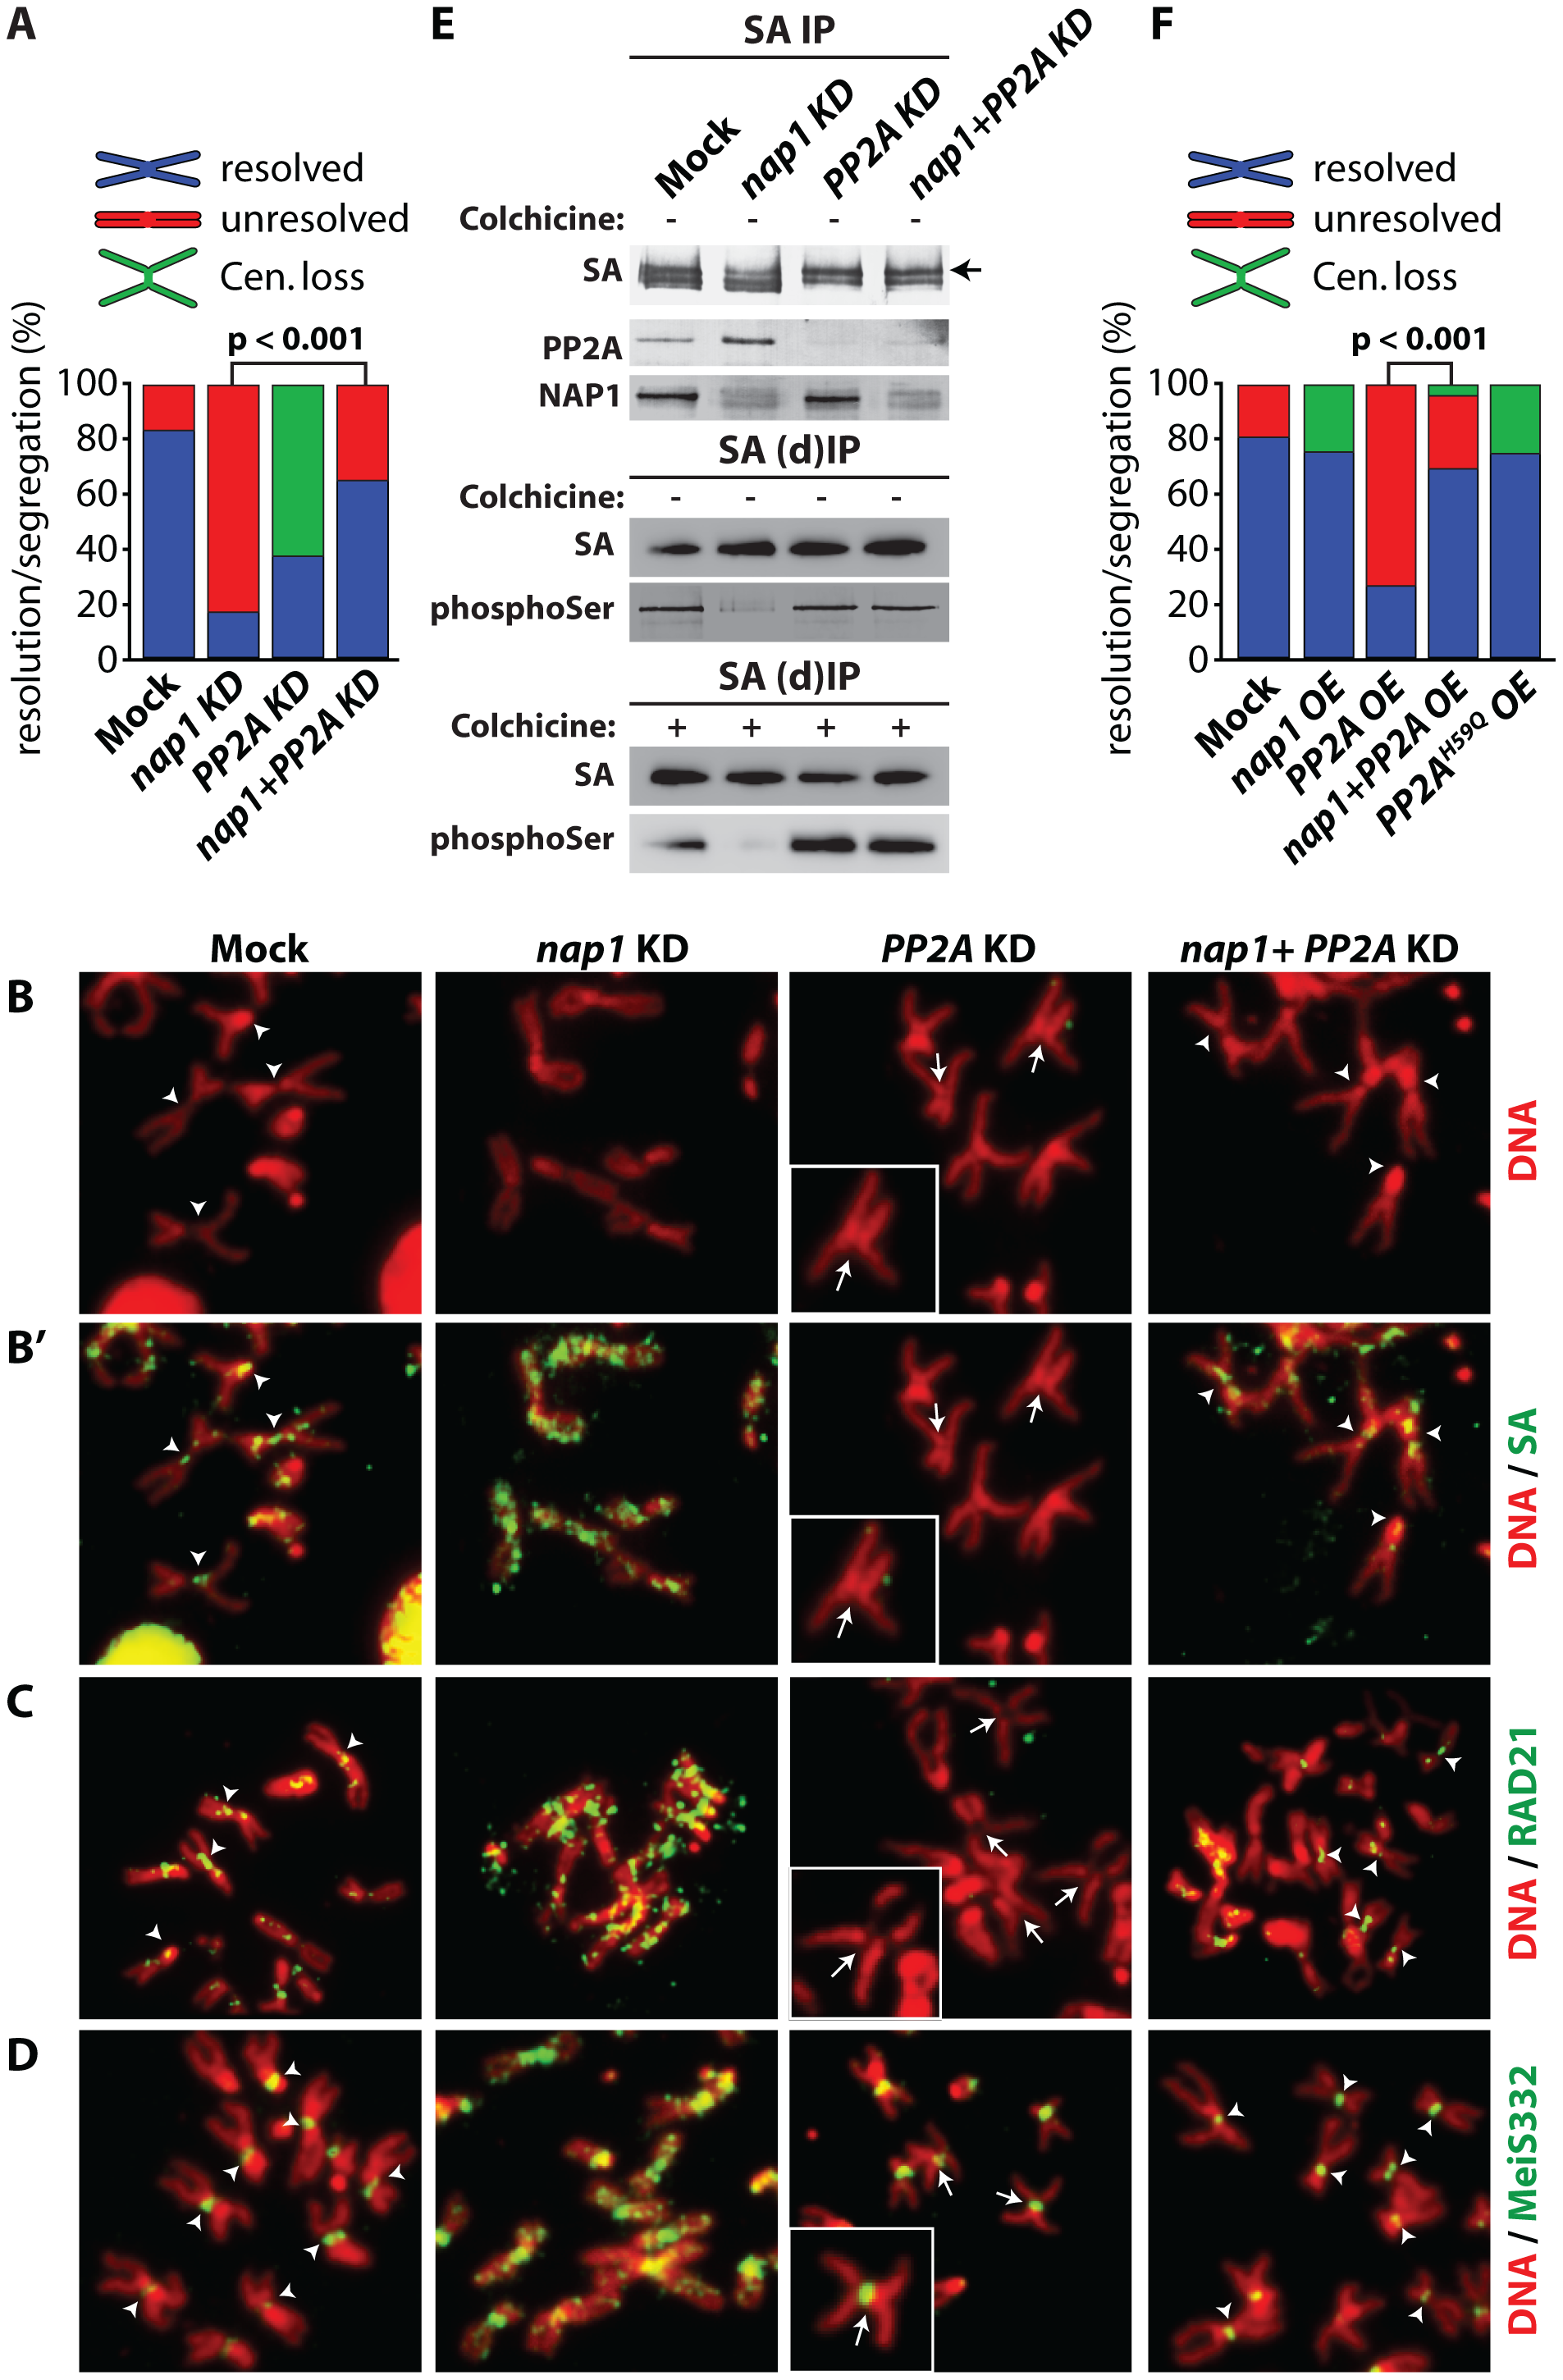 NAP1 and PP2A act antagonistically in cohesin cycle.